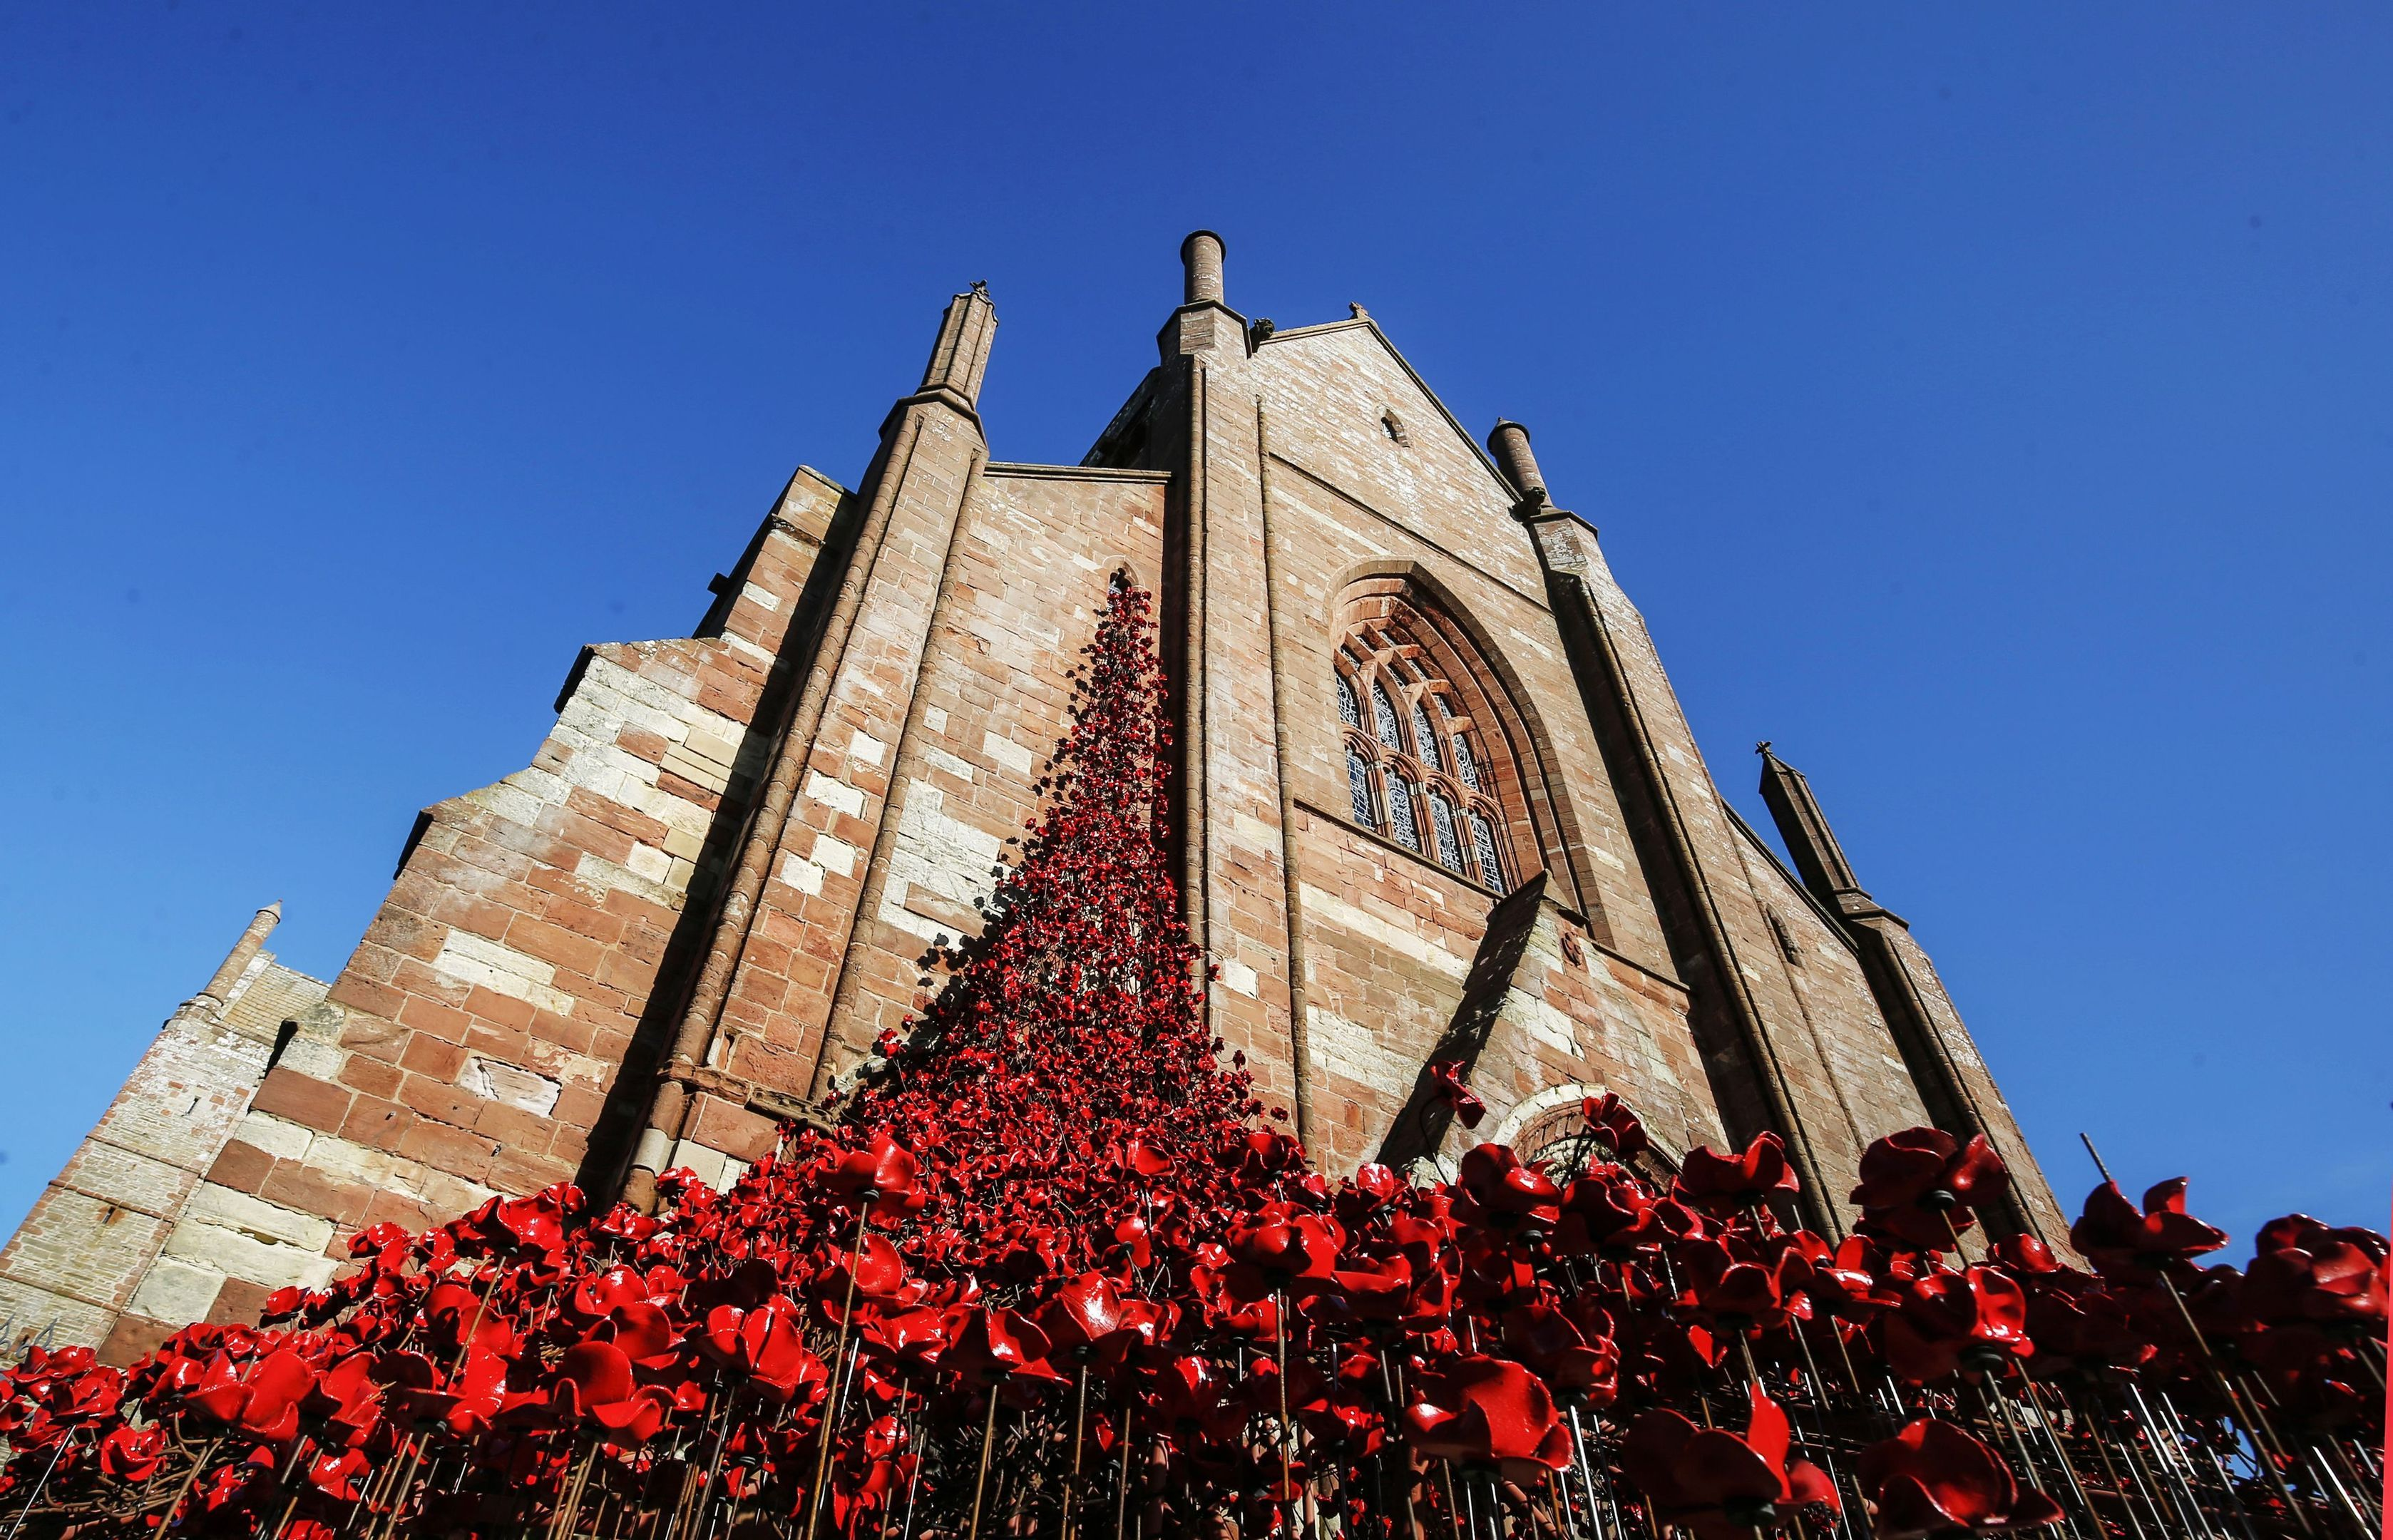 The Weeping Window sculpture in Orkney.